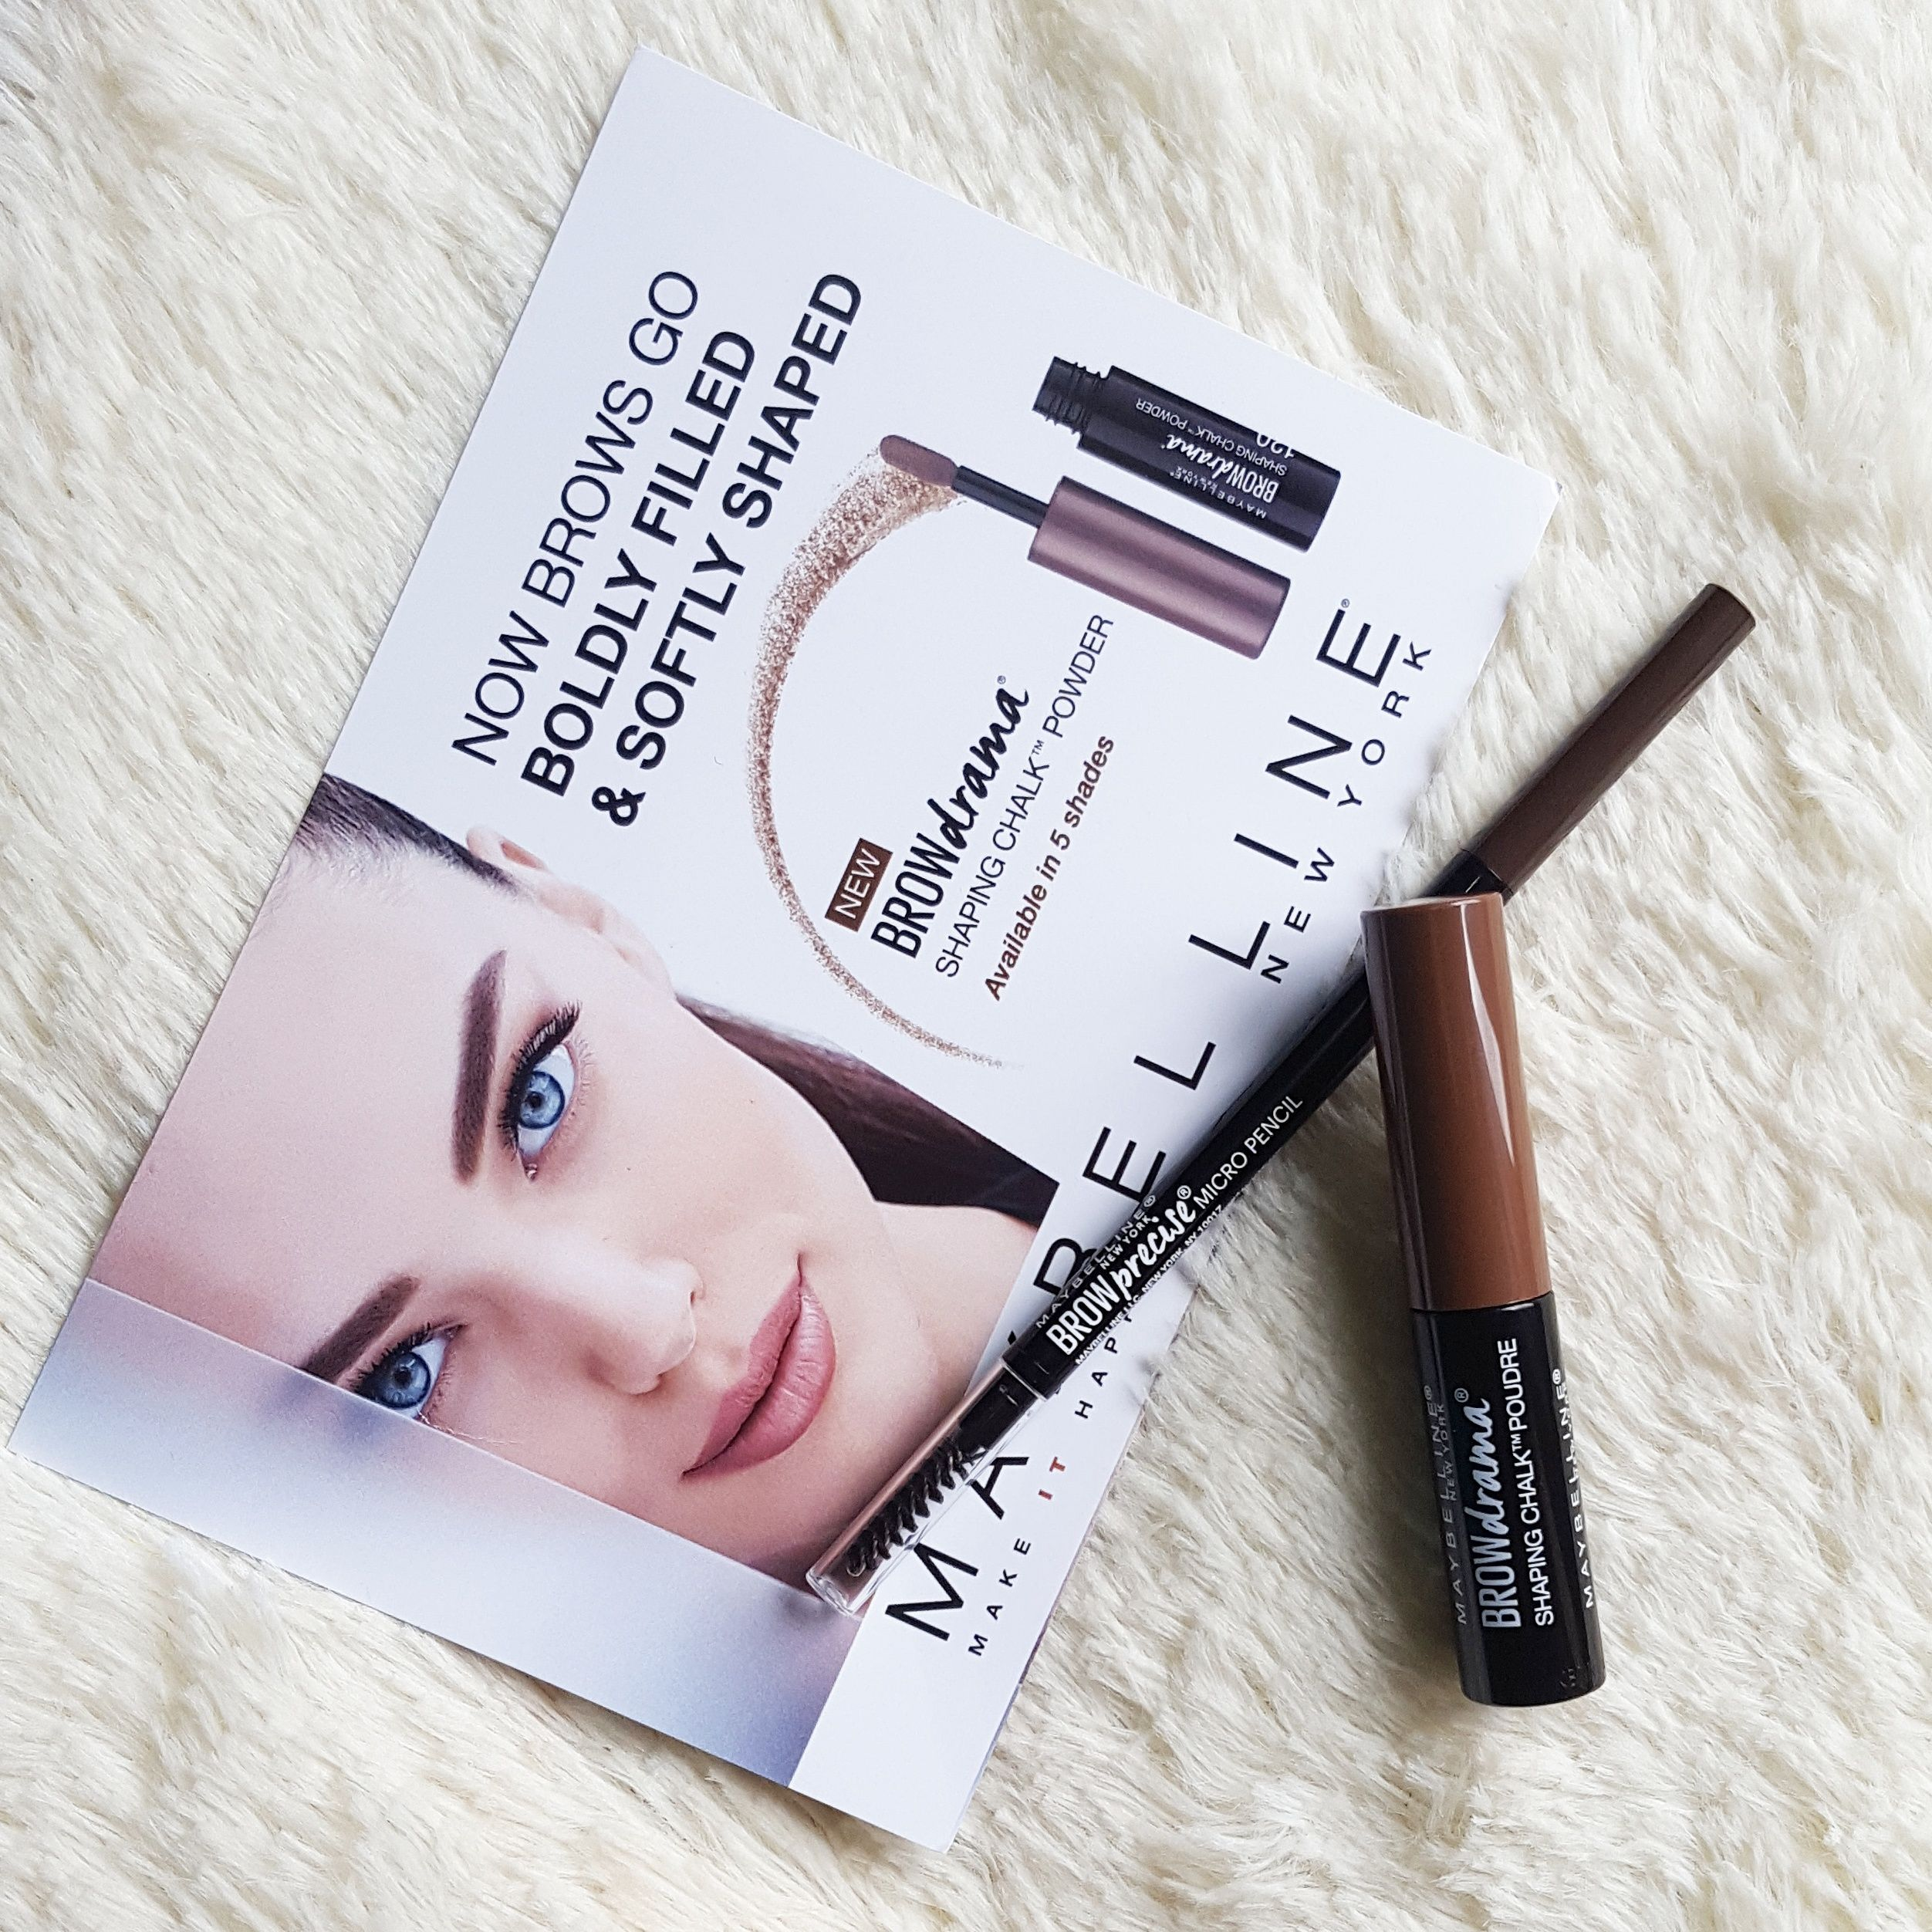 Maybelline Brow Drama Shaping Chalk Powder Review and